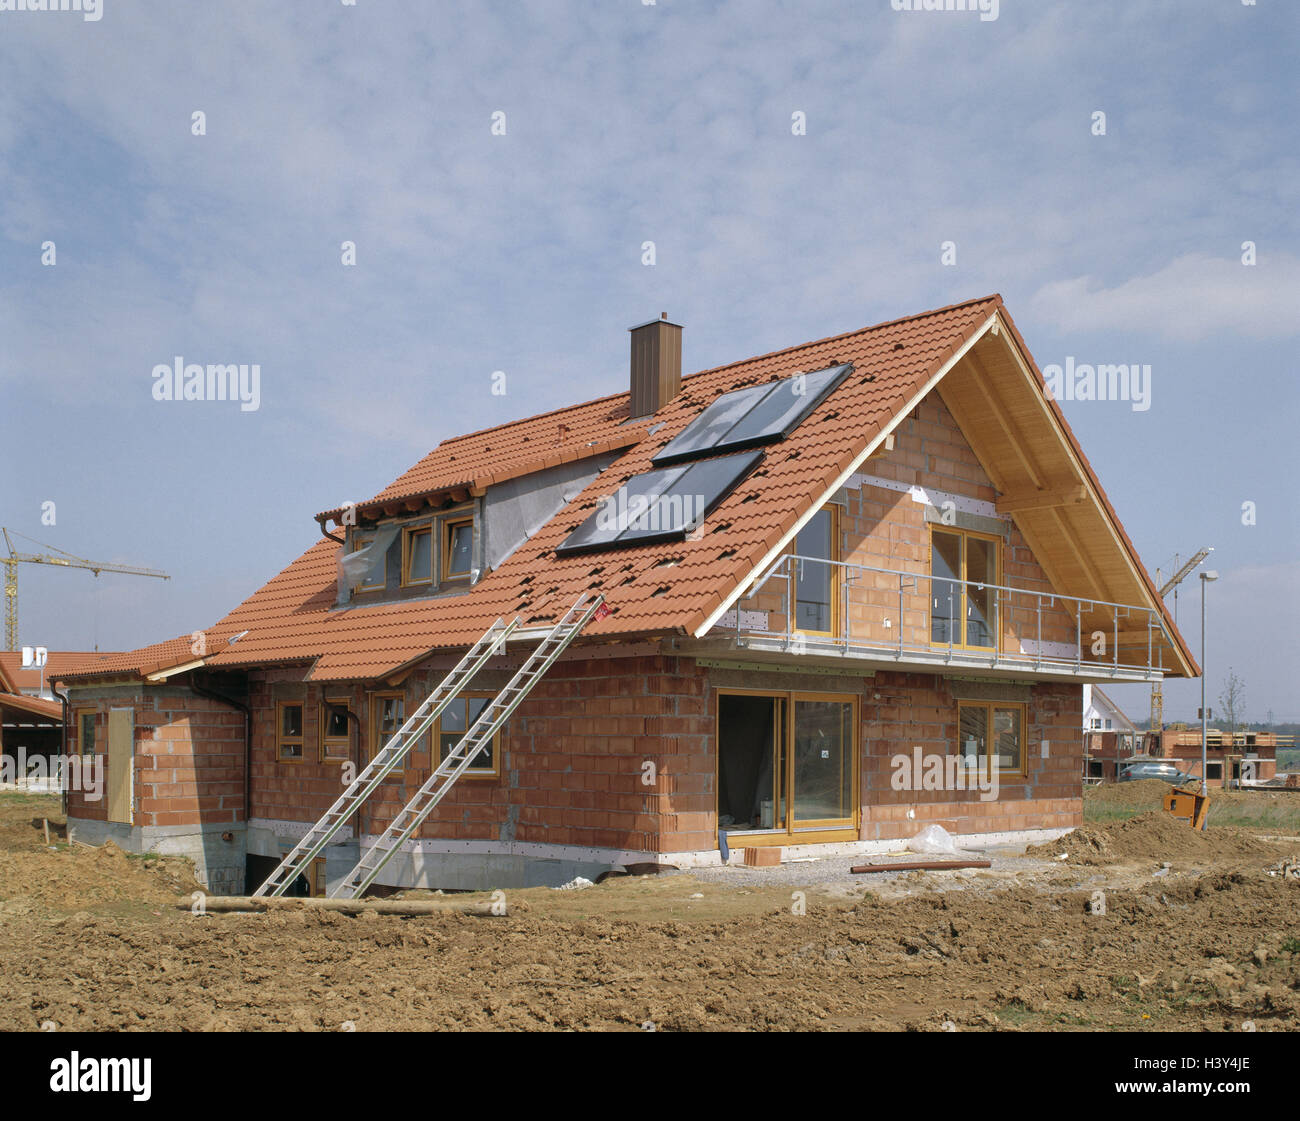 Single Family Dwelling, Shell, House Roof, Solar Plant, House, Houses,  Building Of A House, Construction, Build, Residential Property, Own Home,  Real Estate ...